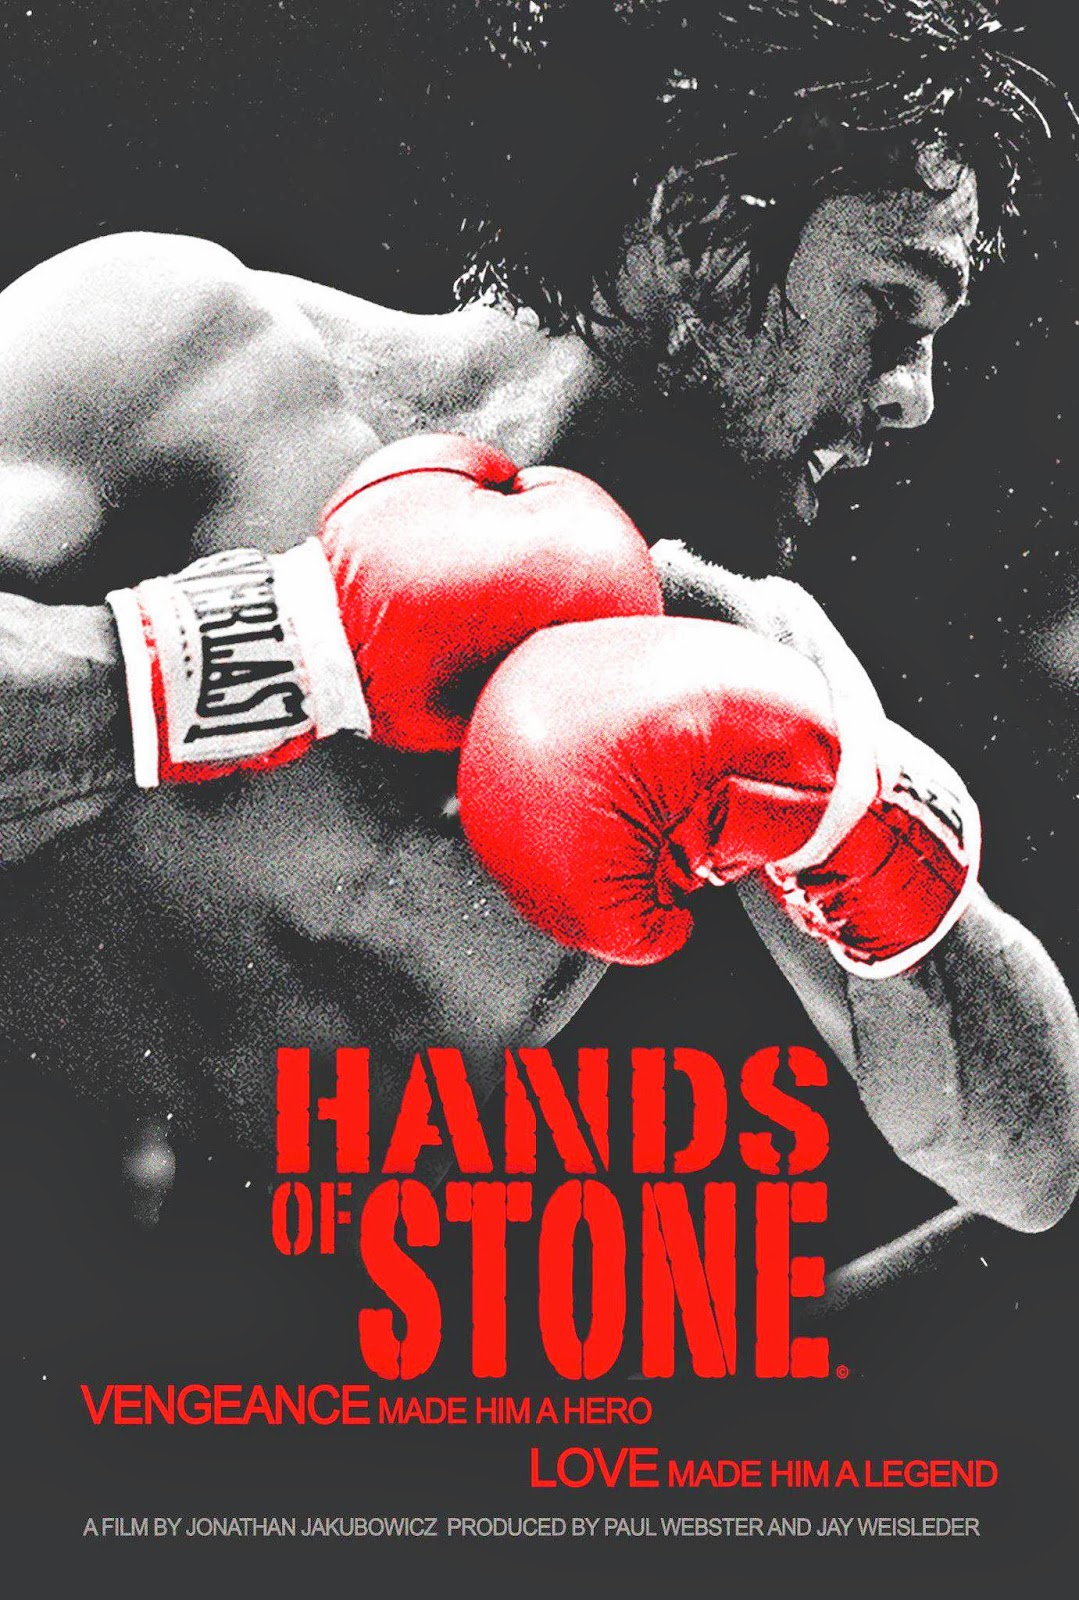 Hands of Stone Movie (CLICK POSTER TO SEE TRAILER OF FILM)